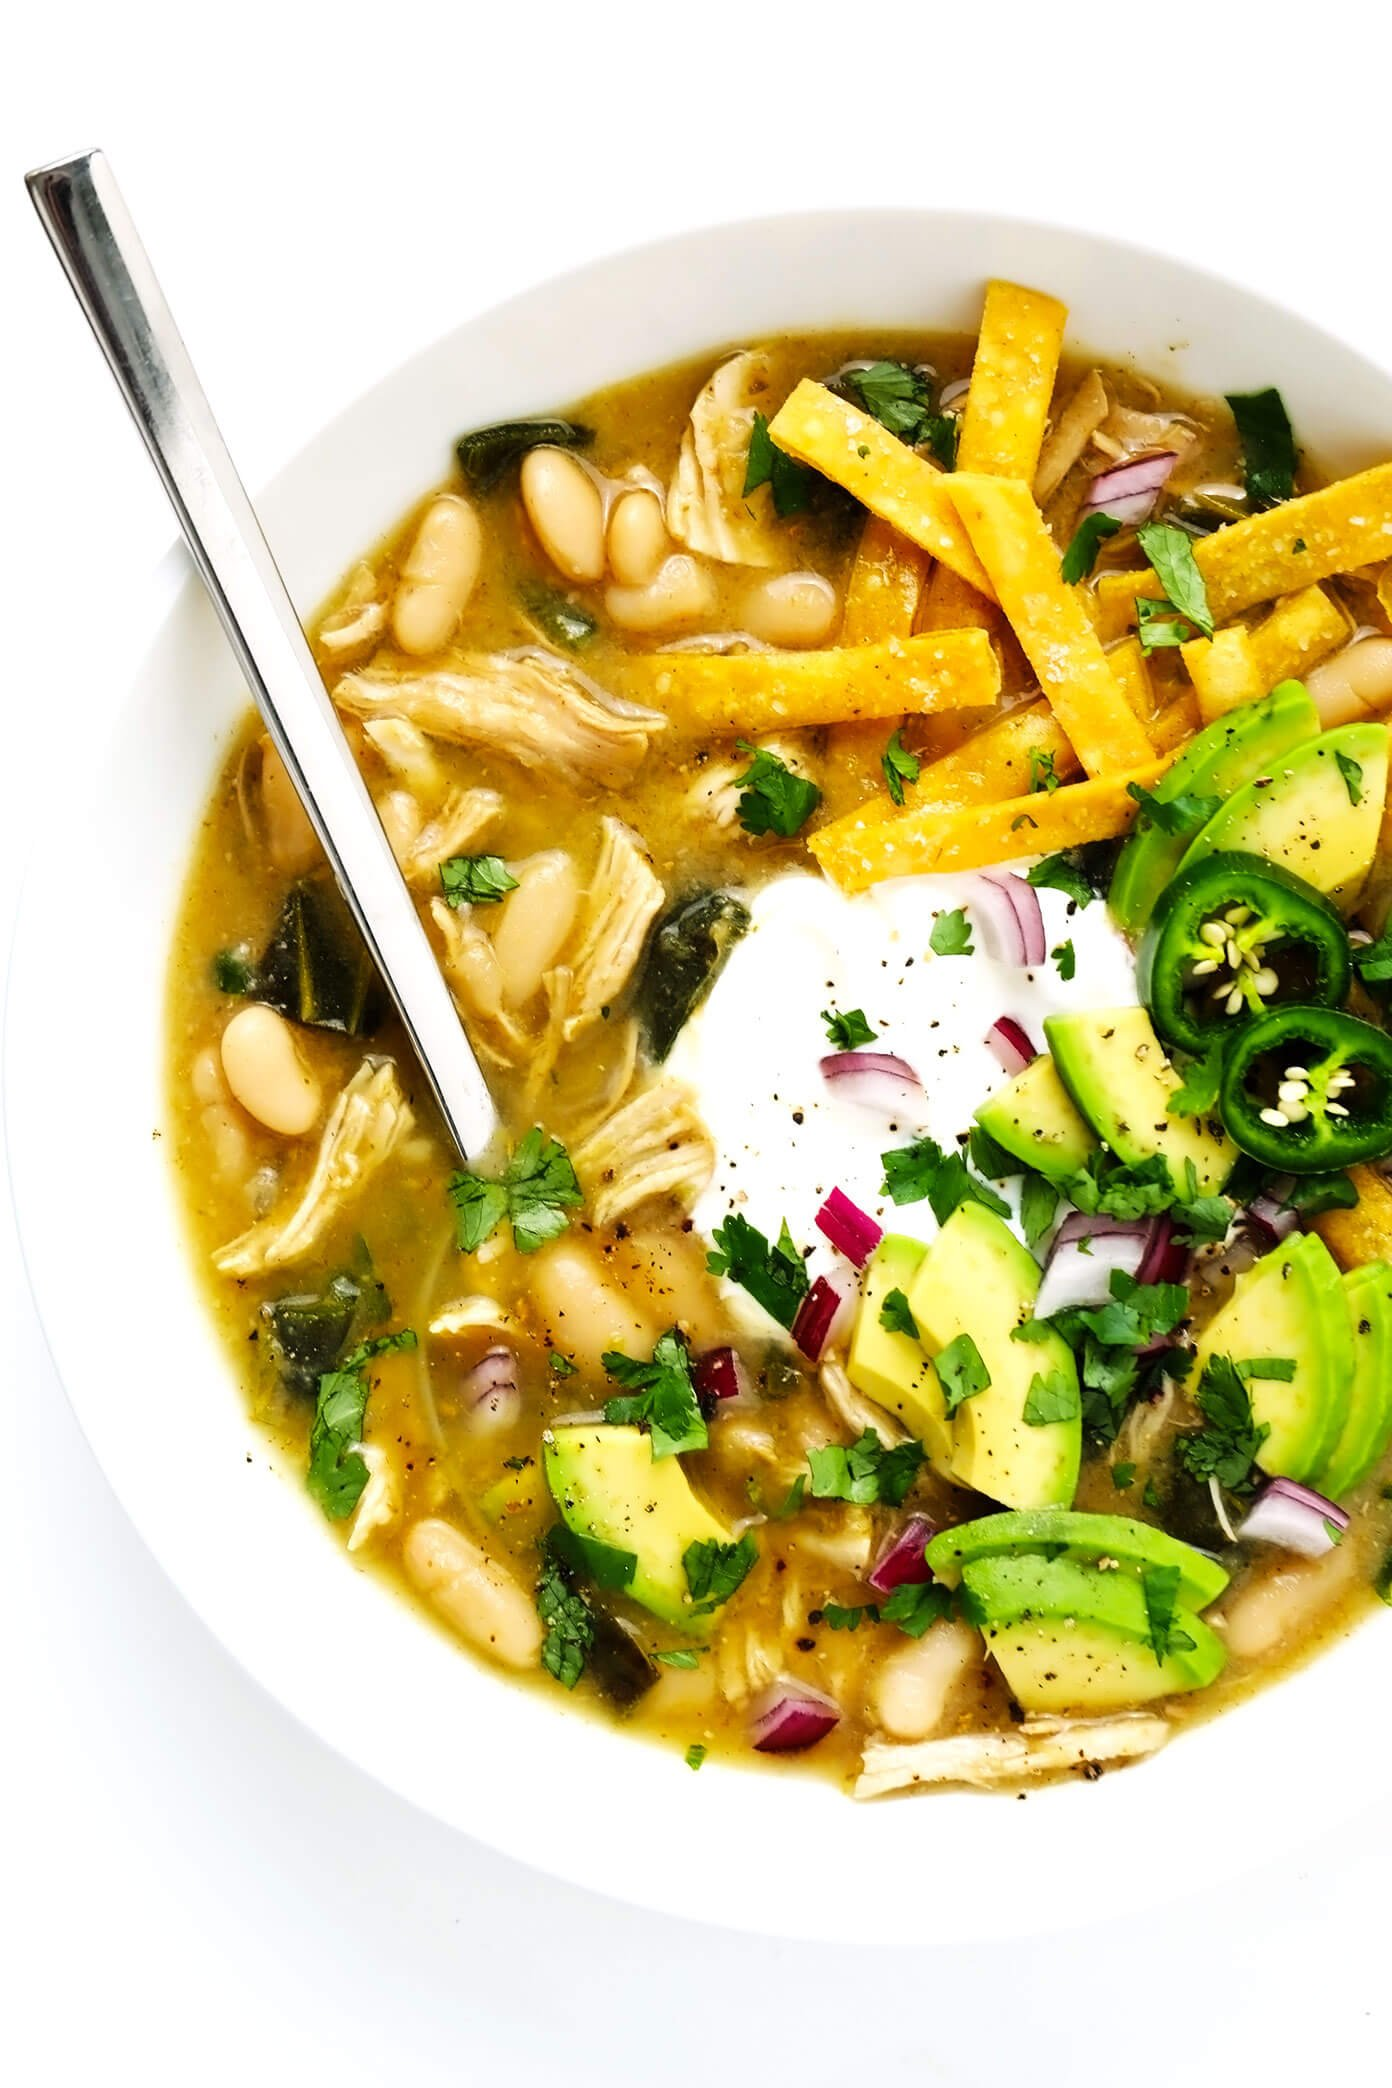 Poblano White Chicken Chili in Bowl with Avocado and Cilantro Toppings